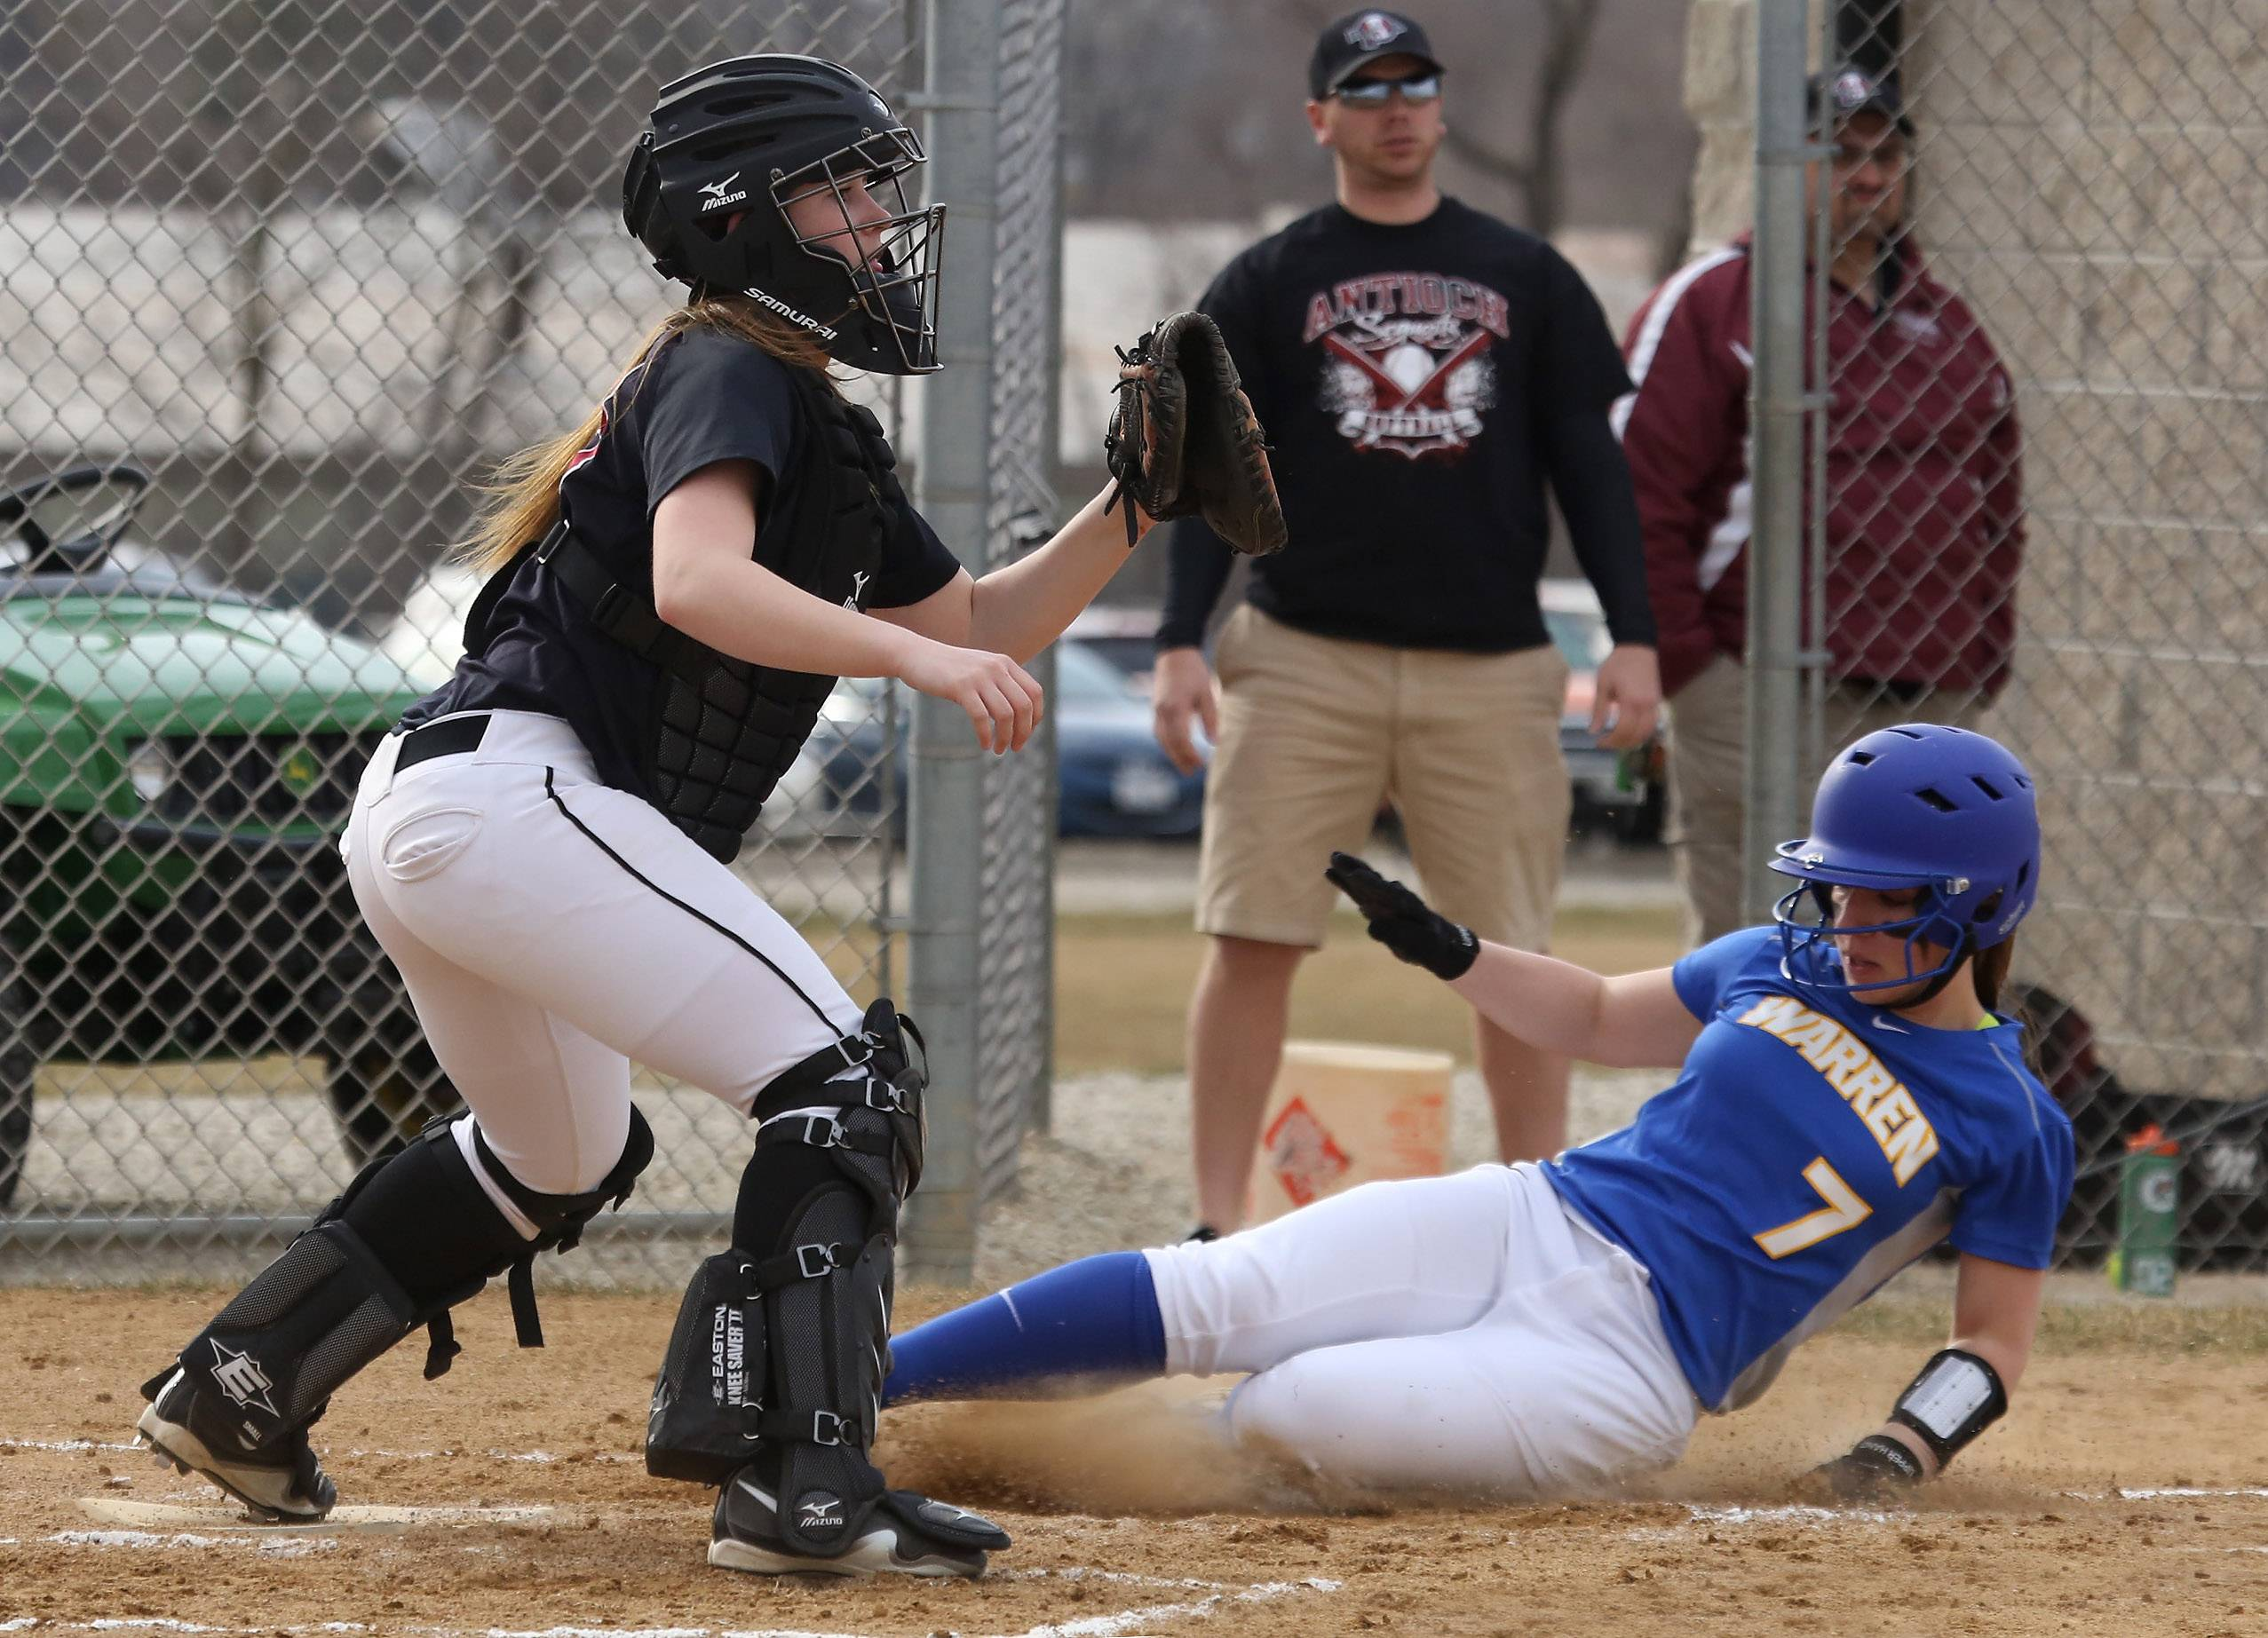 Warren's Jensen Plata slides safely into home past the tag of Antioch catcher Jessica Tyrell after a double steal on Thursday at Antioch.